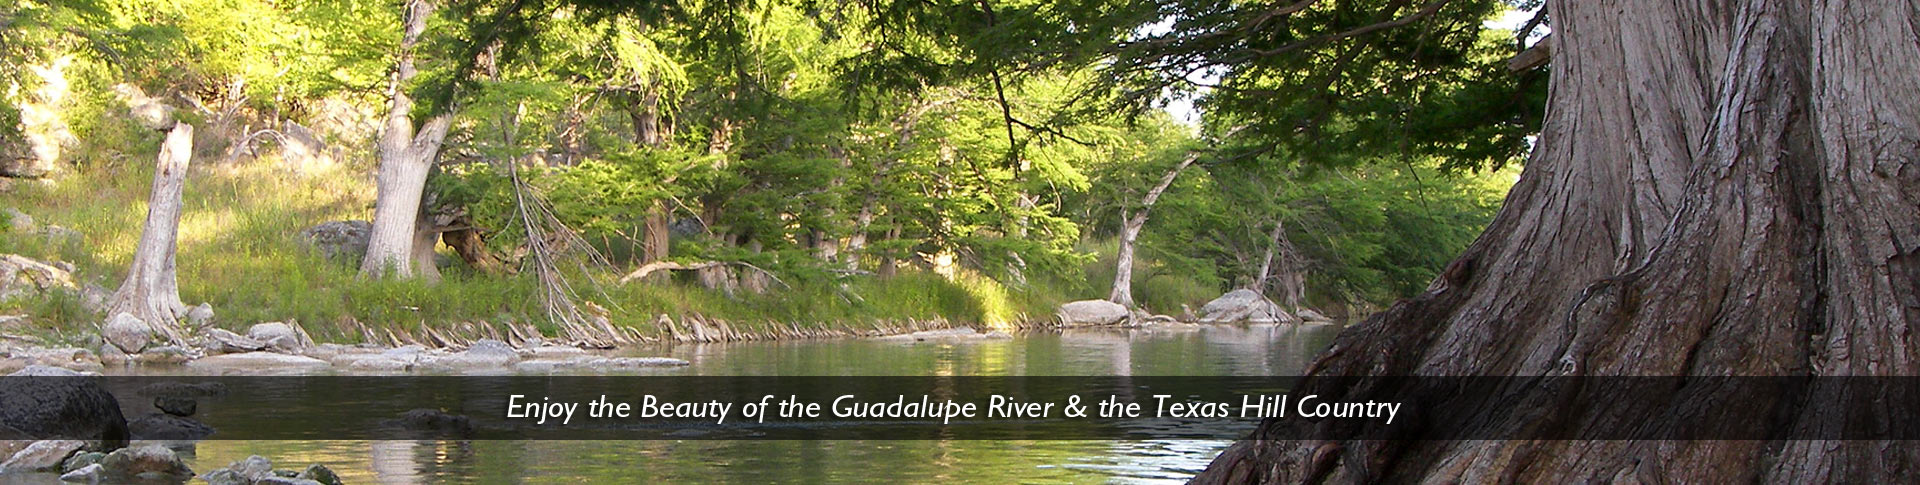 vacation on the guadalupe river